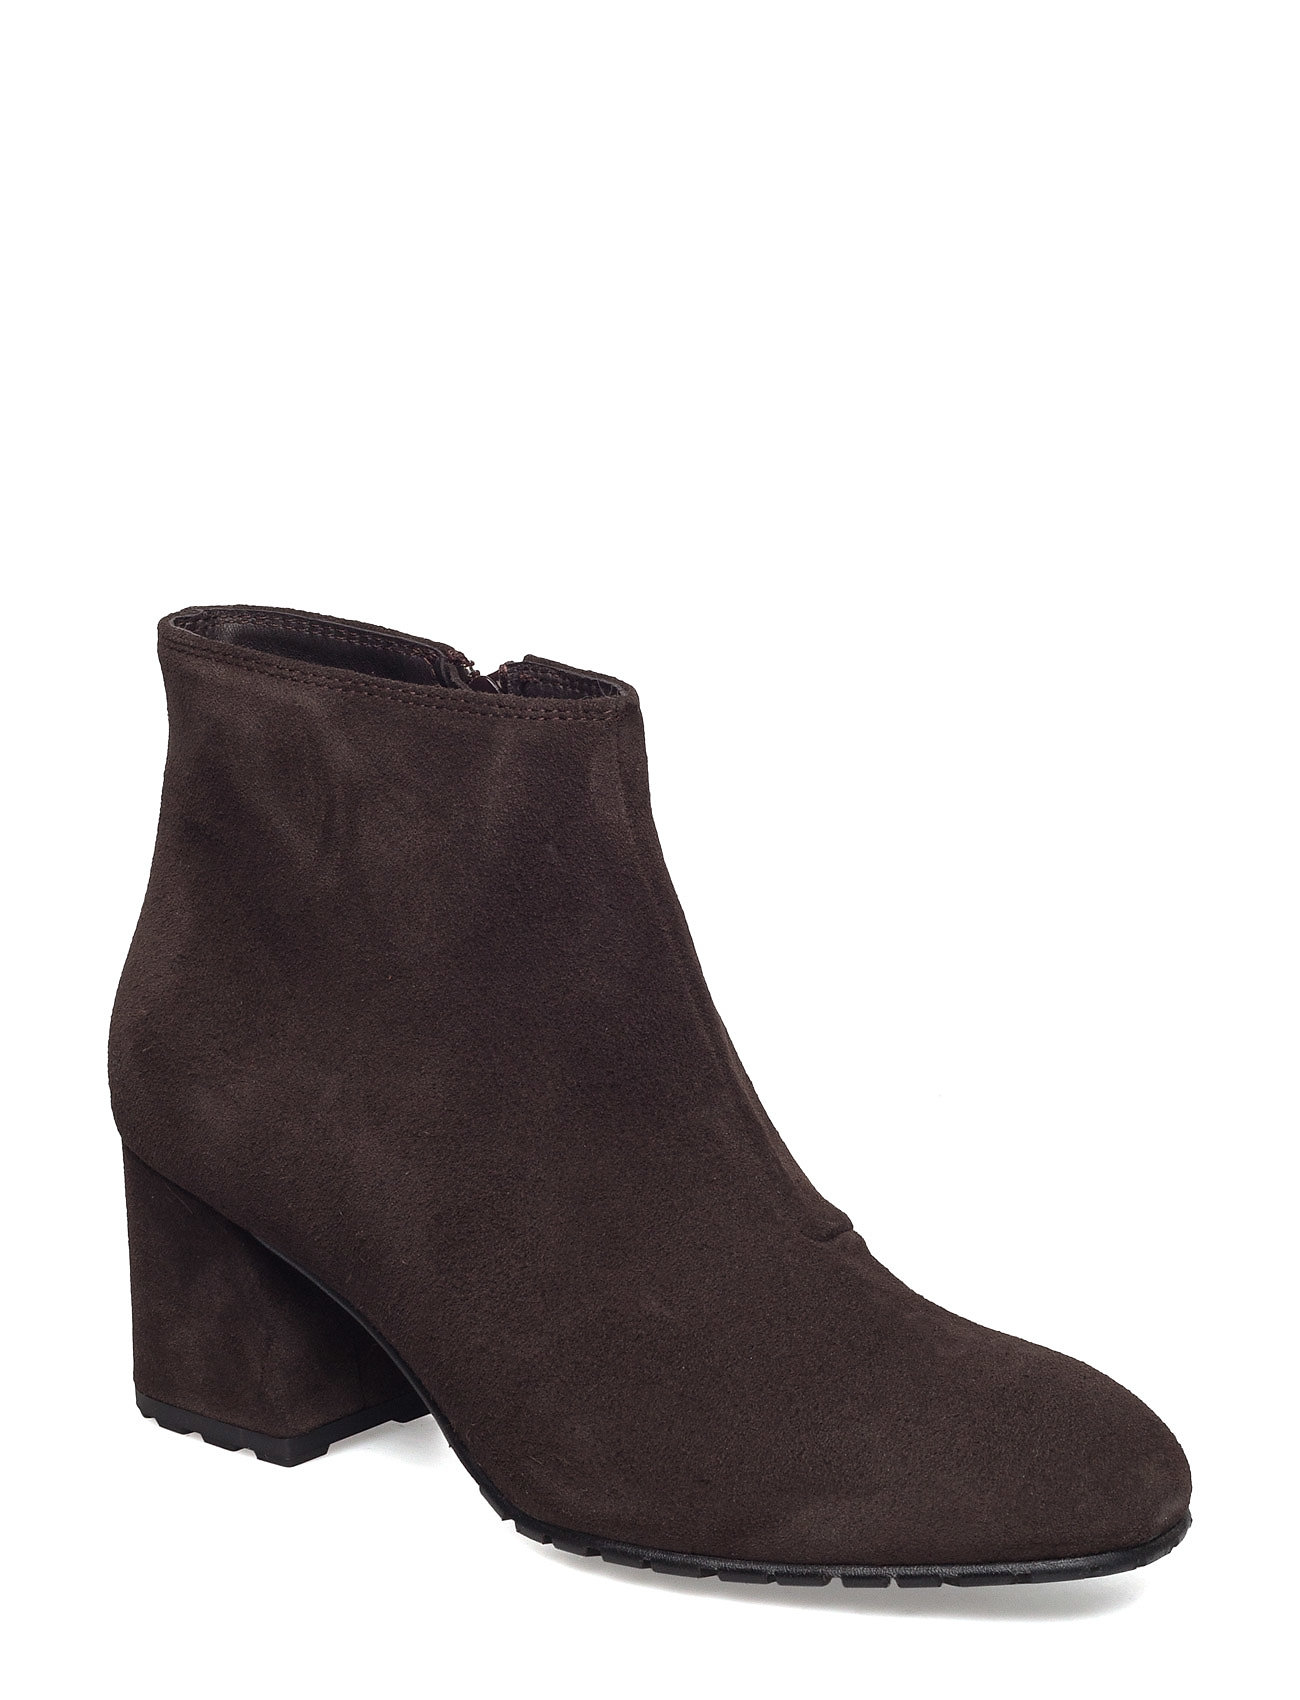 Image of Suede Ankle Boot Shoes Boots Ankle Boots Ankle Boot - Heel Brun Ilse Jacobsen (2728536011)